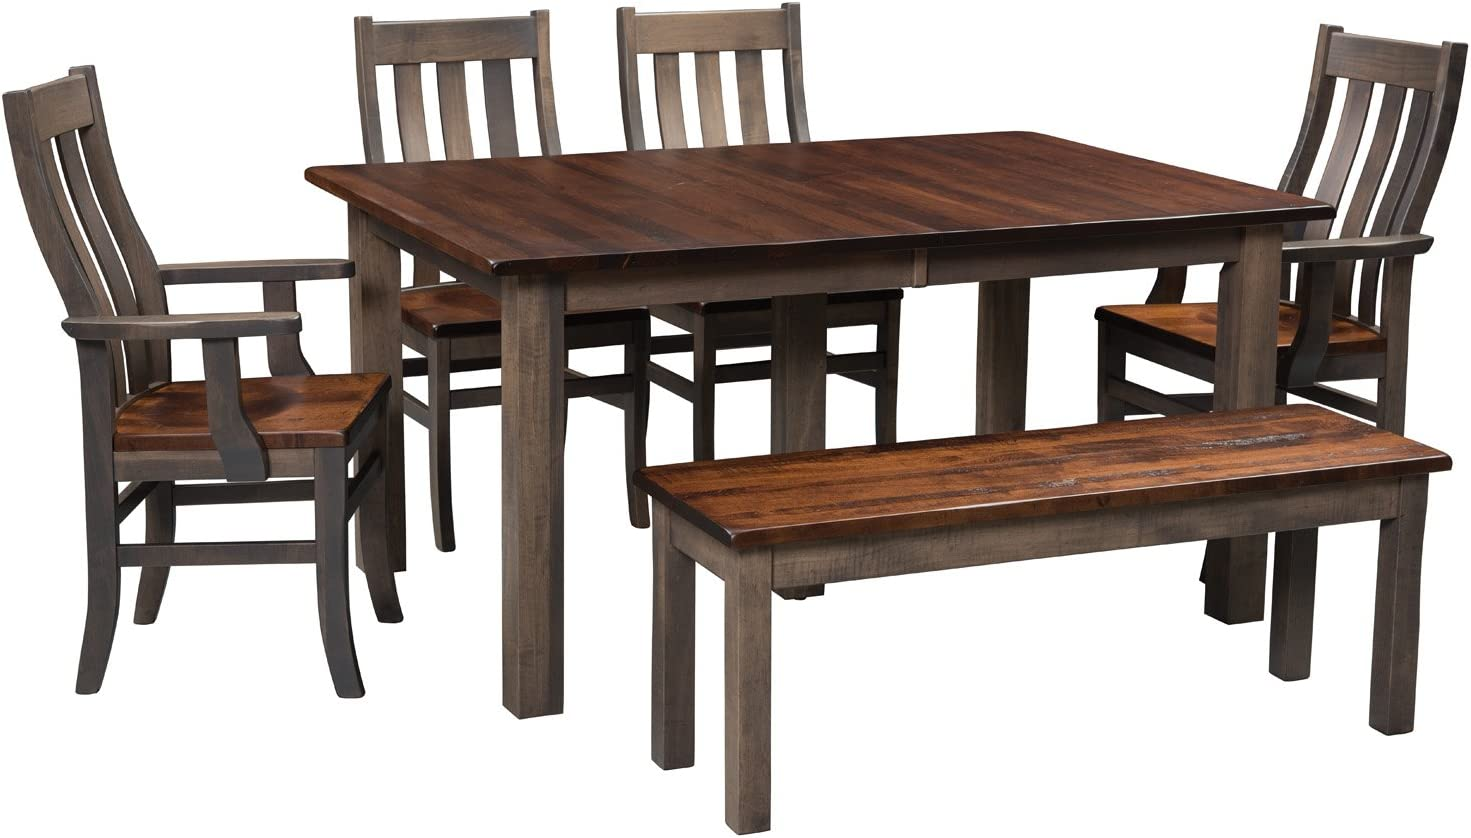 Solid Wood Maple Kitchen Dining Room Table Chair Set 6 - 8, Grey and Brown  Diningroom, Custom Amish Made for Every Day and Holidays, White Glove ...